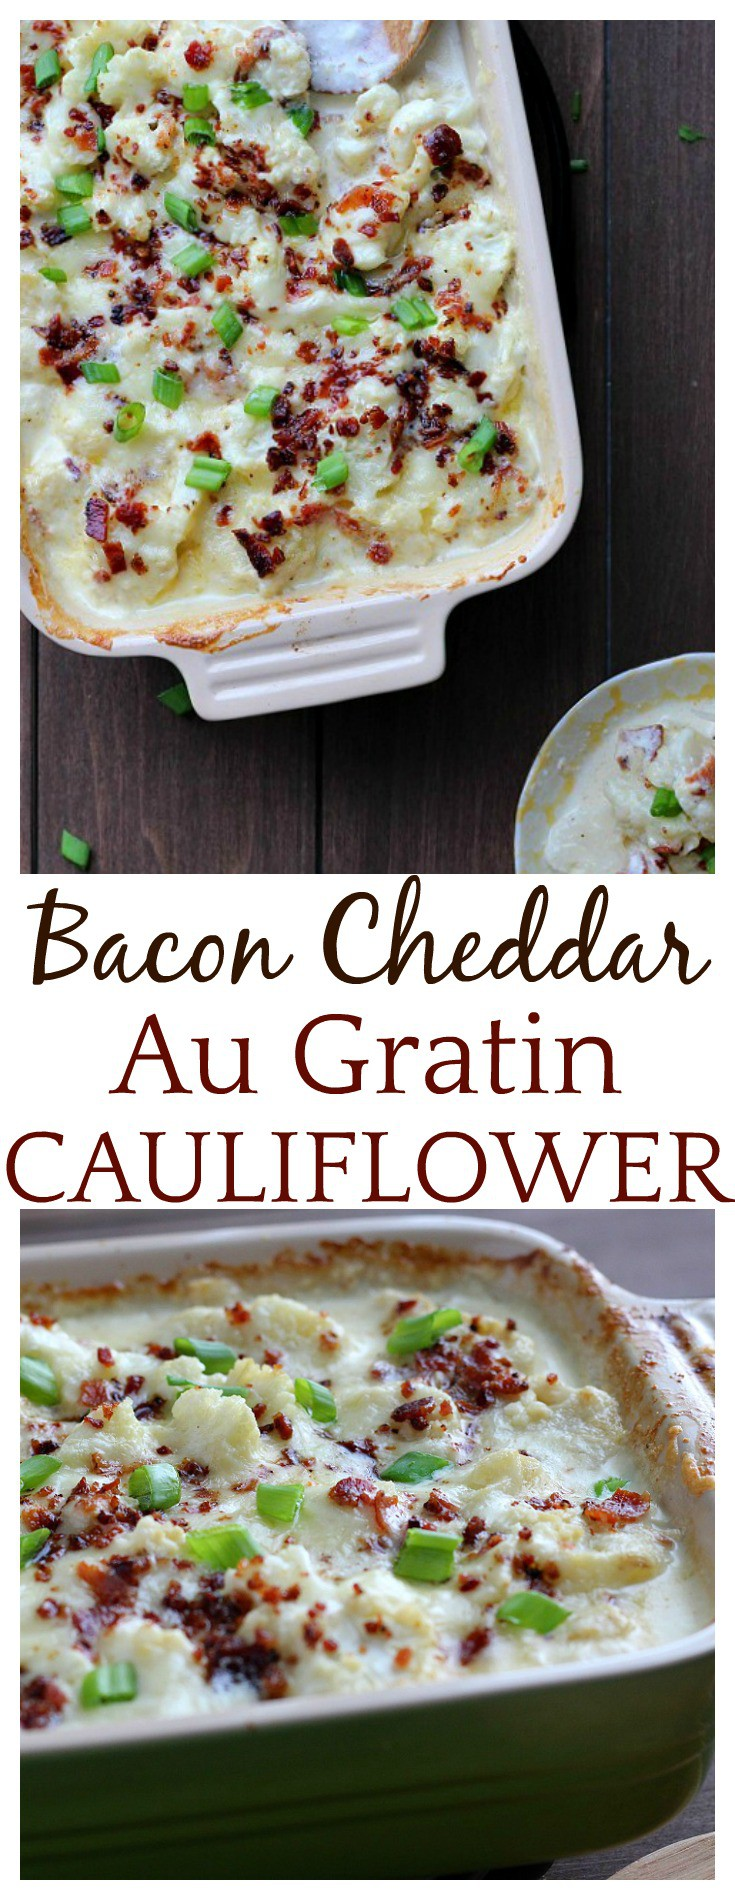 Low carb Au Gratin Cauliflower is just as creamy and flavorful as Au Gratin Potatoes! This is a great side dish! It's perfect for gluten free, keto and low carb diets but everyone will love with flavorful, easy recipe! It's so good!